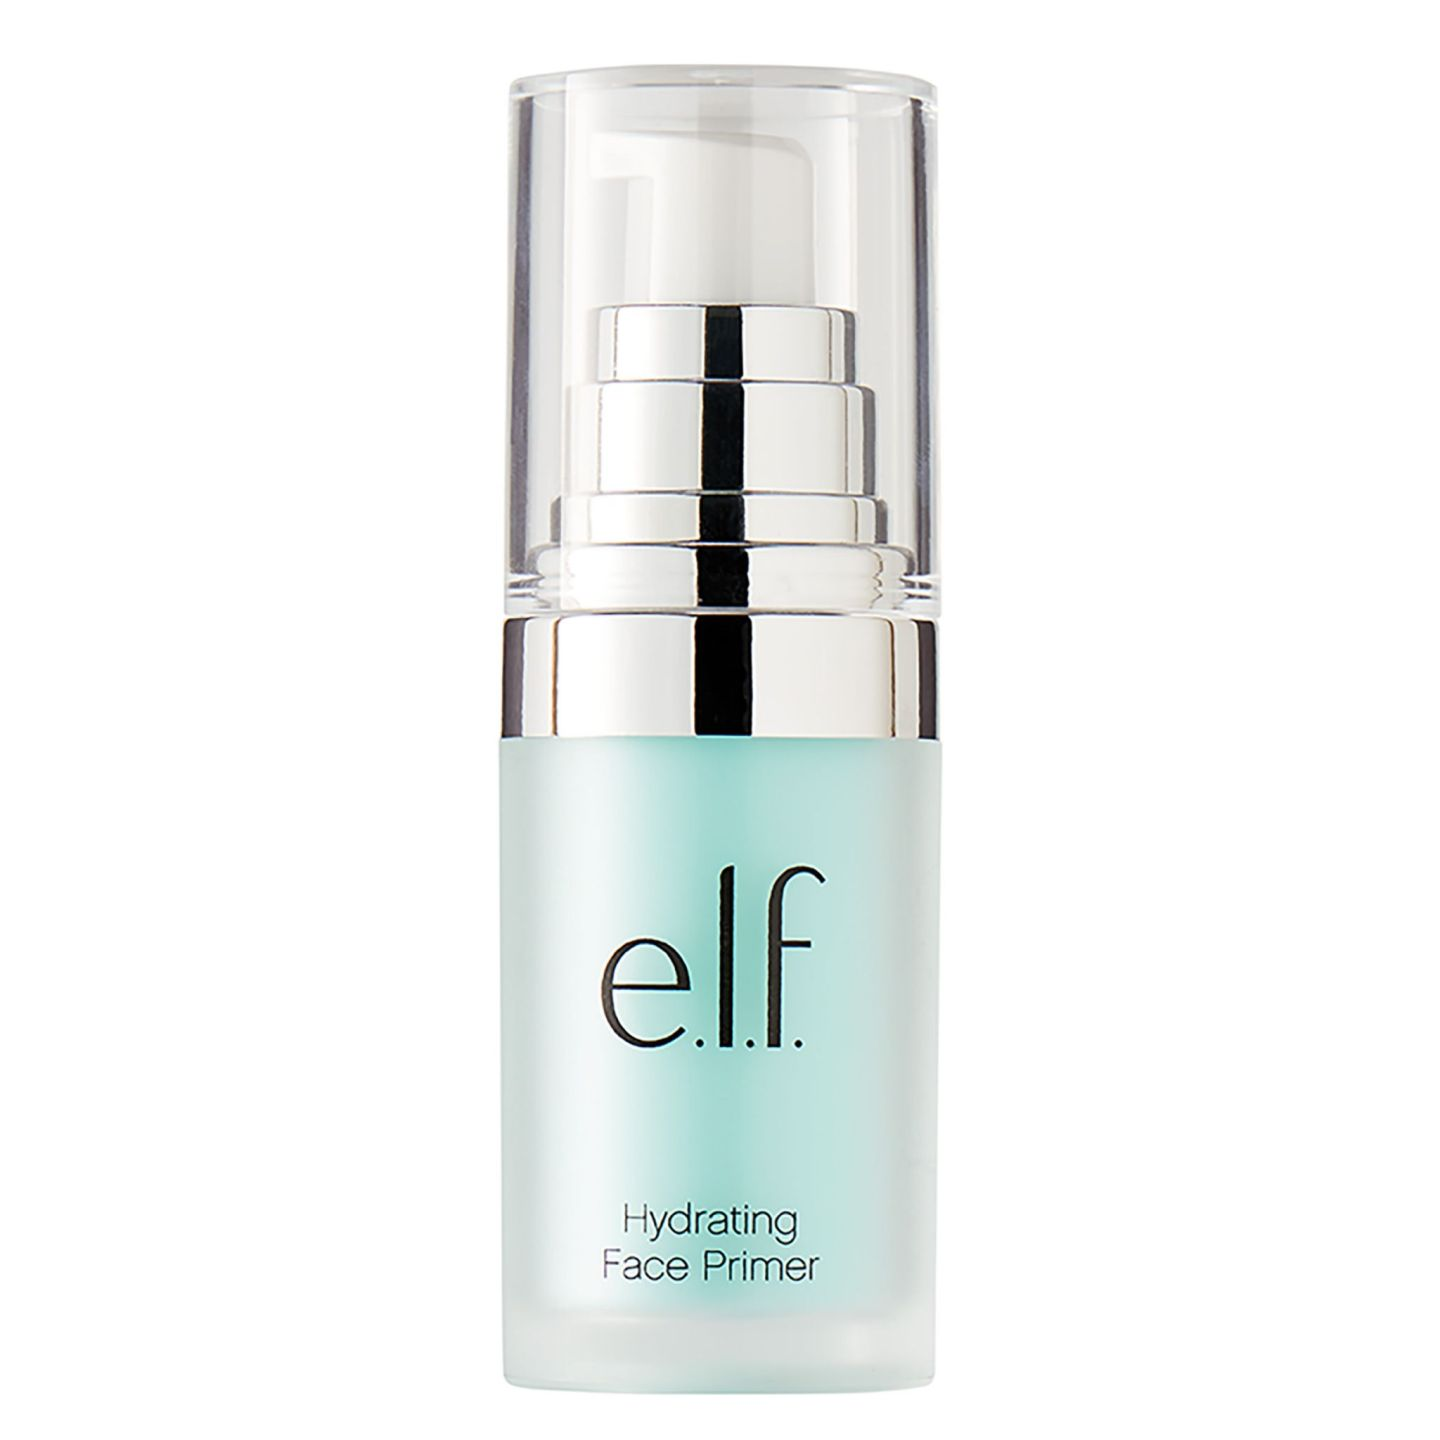 e.l.f Hydrating Face Primer